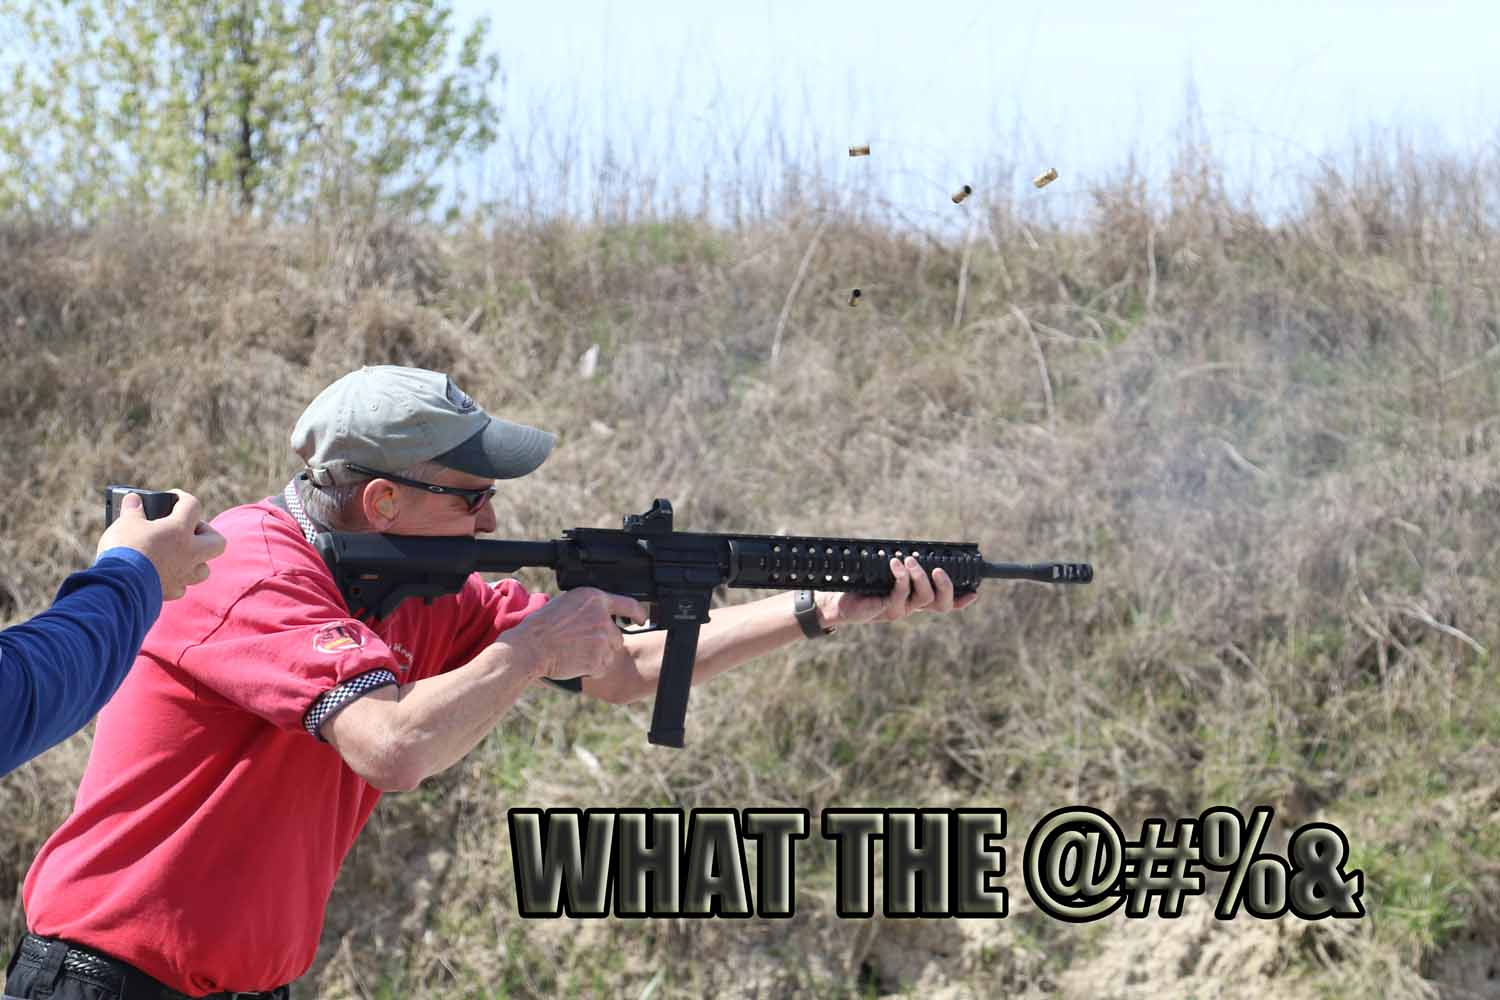 Drop in trigger for PSA AR9? - Page 2 - Rifle - Technical